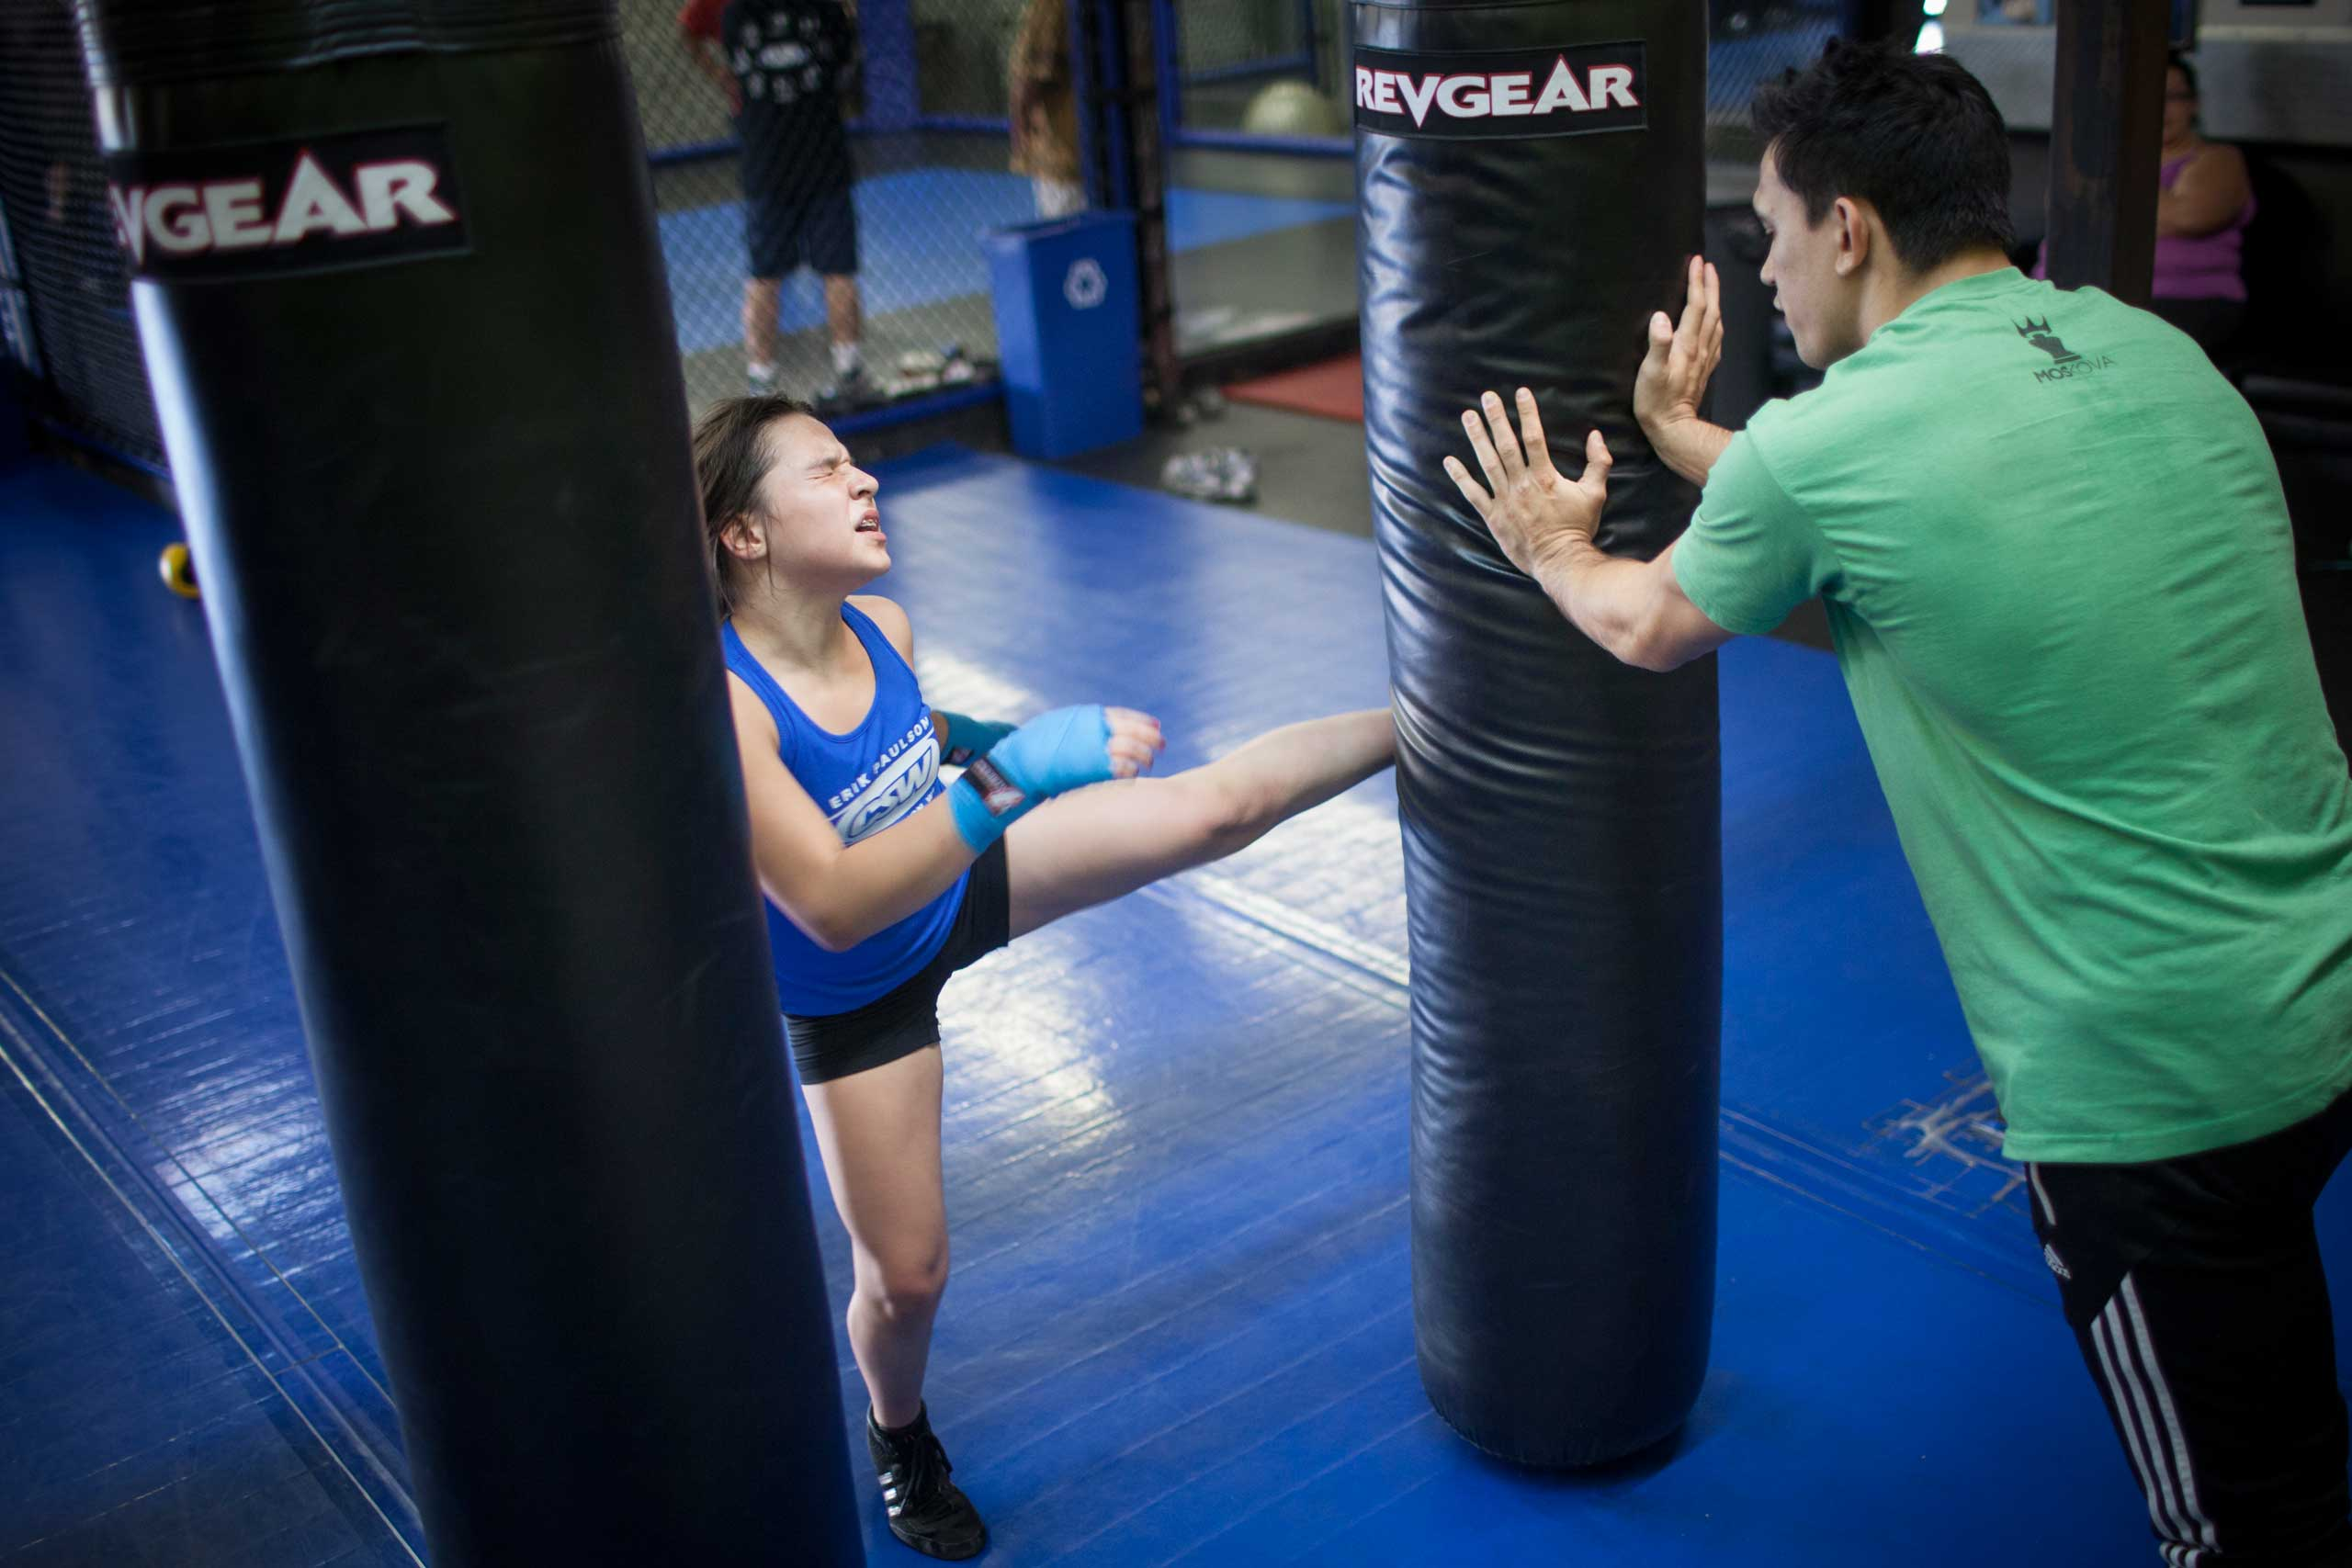 Cheyenne Bowman, 11, at personal mixed martial arts practice with coach Craig Wilkerson, a professional MMA fighter. La Habra, Calif., Nov. 2013.